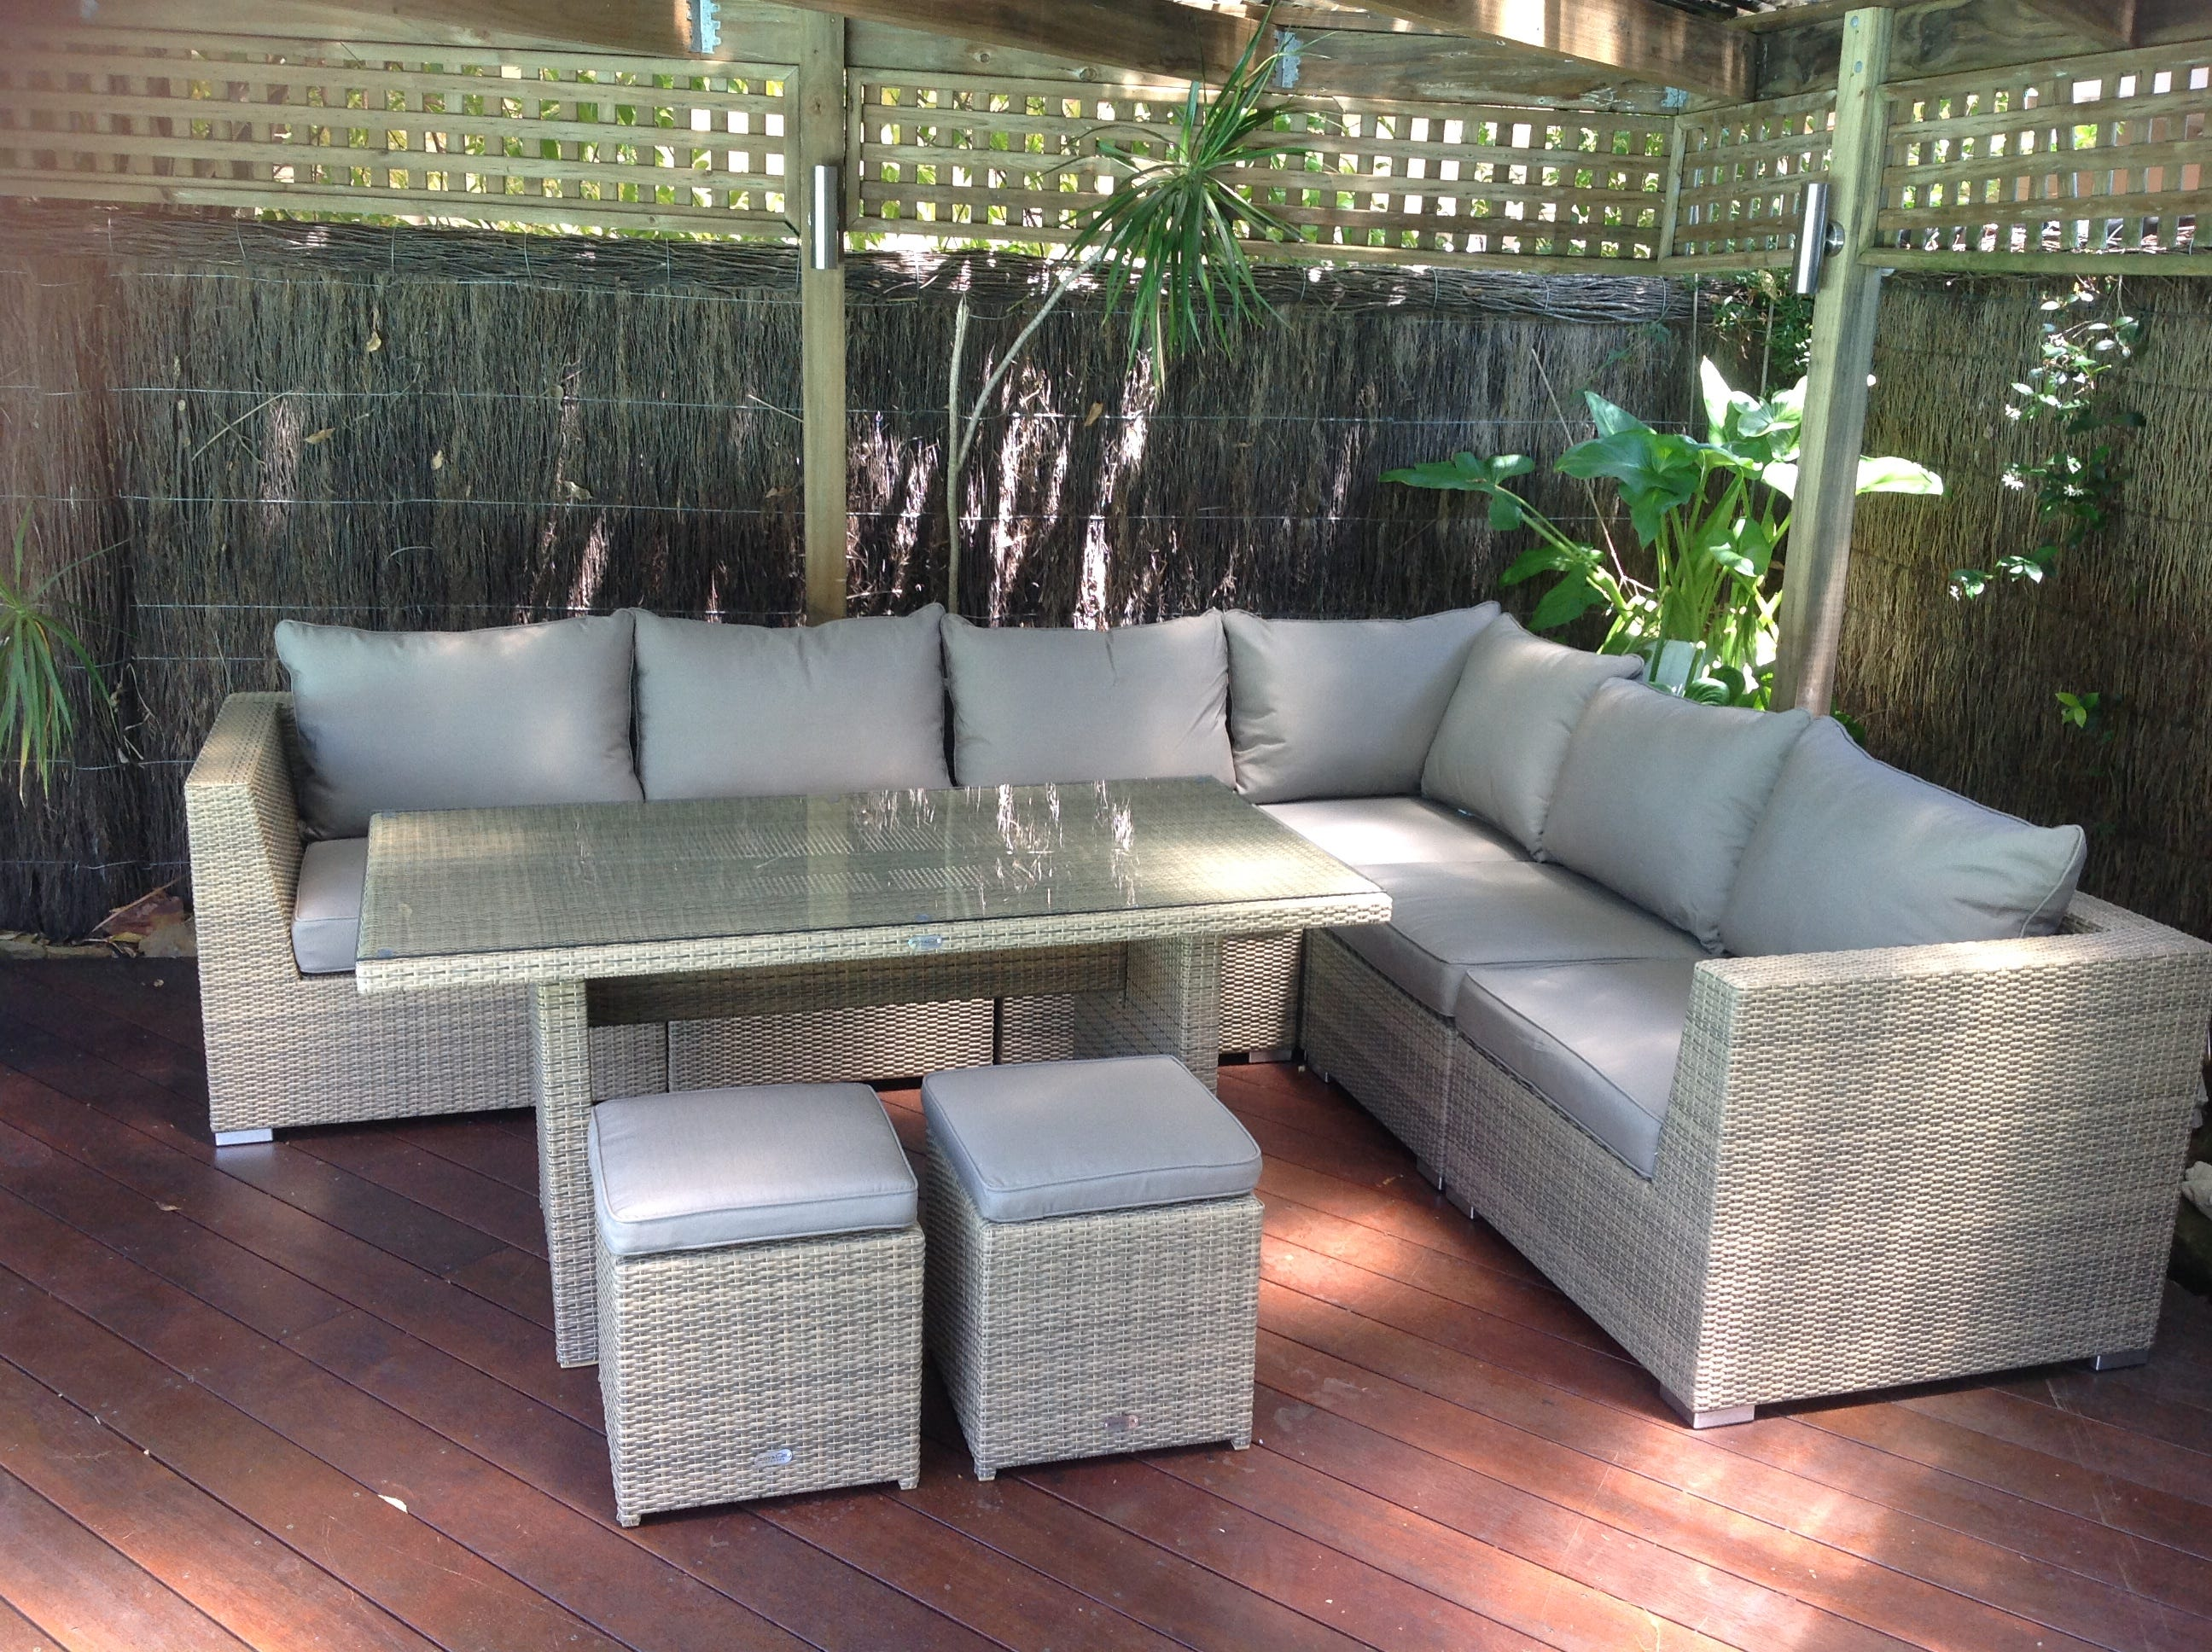 Outdoor furniture evolution dining out in comfort for Outdoor garden furniture